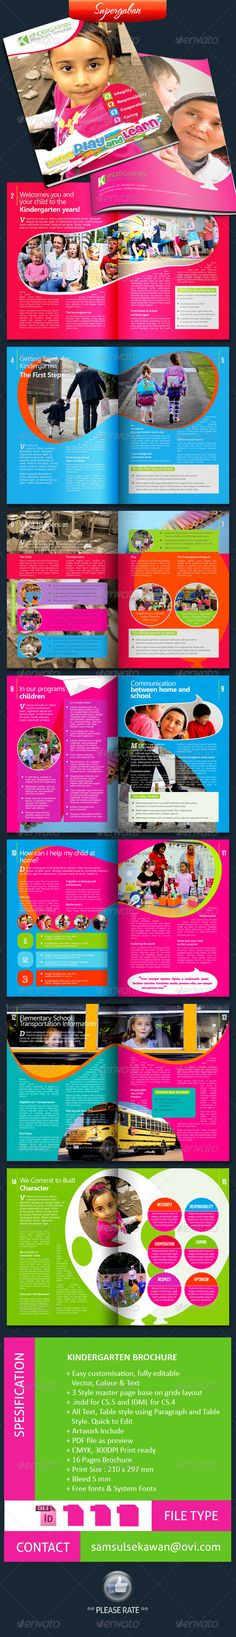 16 Pages Kindergarten Brochure — Photoshop PSD #kids #child • Available here → https://graphicriver.net/item/16-pages-kindergarten-brochure/5496056?ref=pxcr